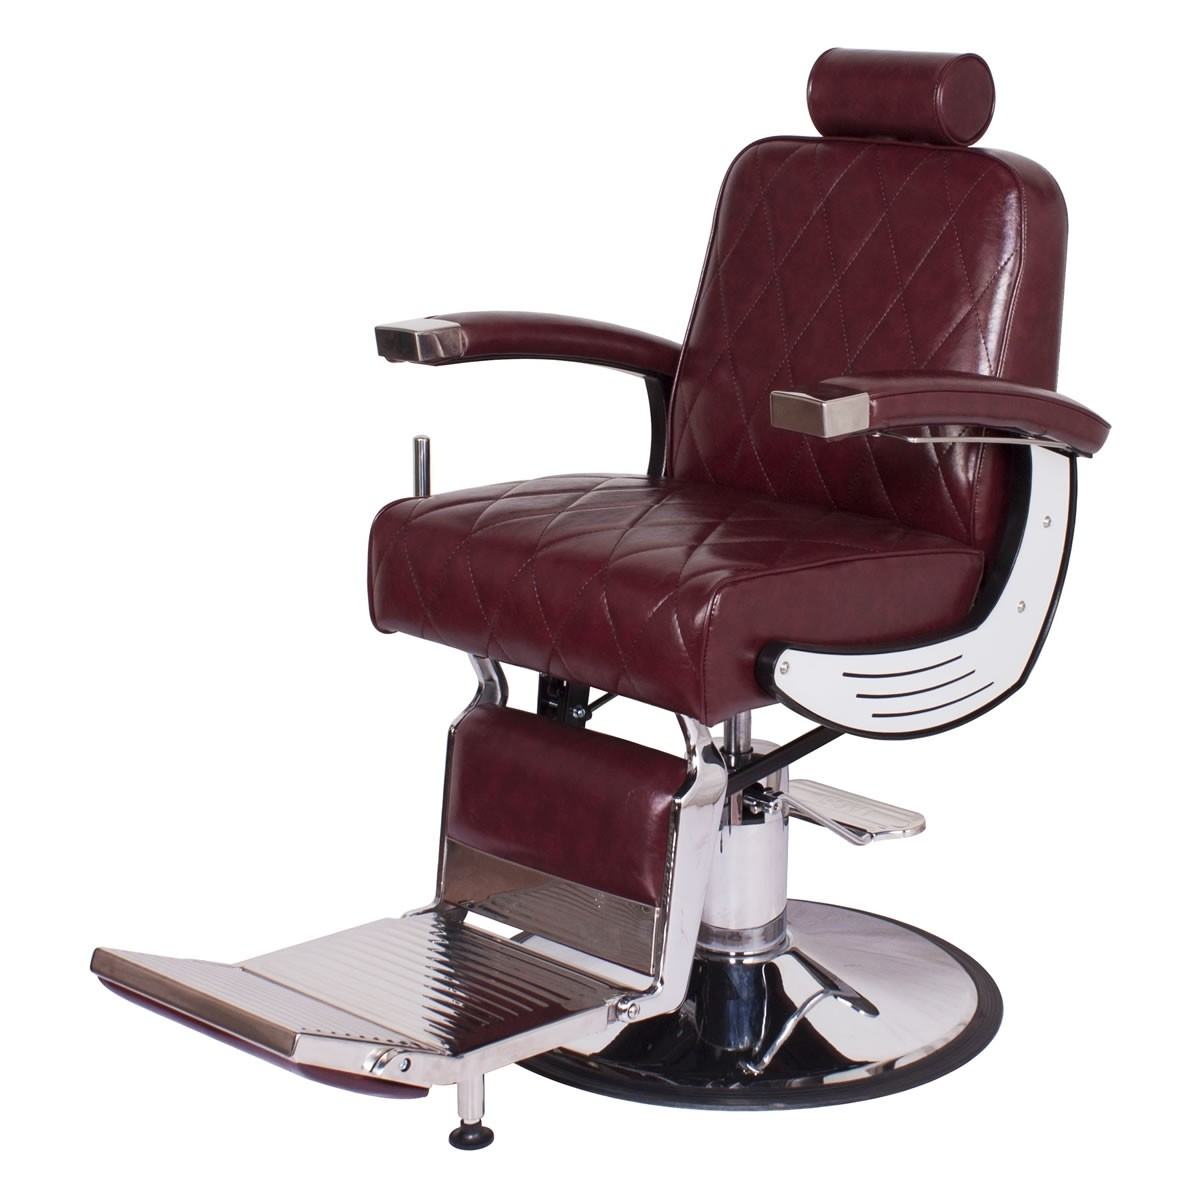 """BARON"" Heavy Duty Barber Chair in Dark Merlot"